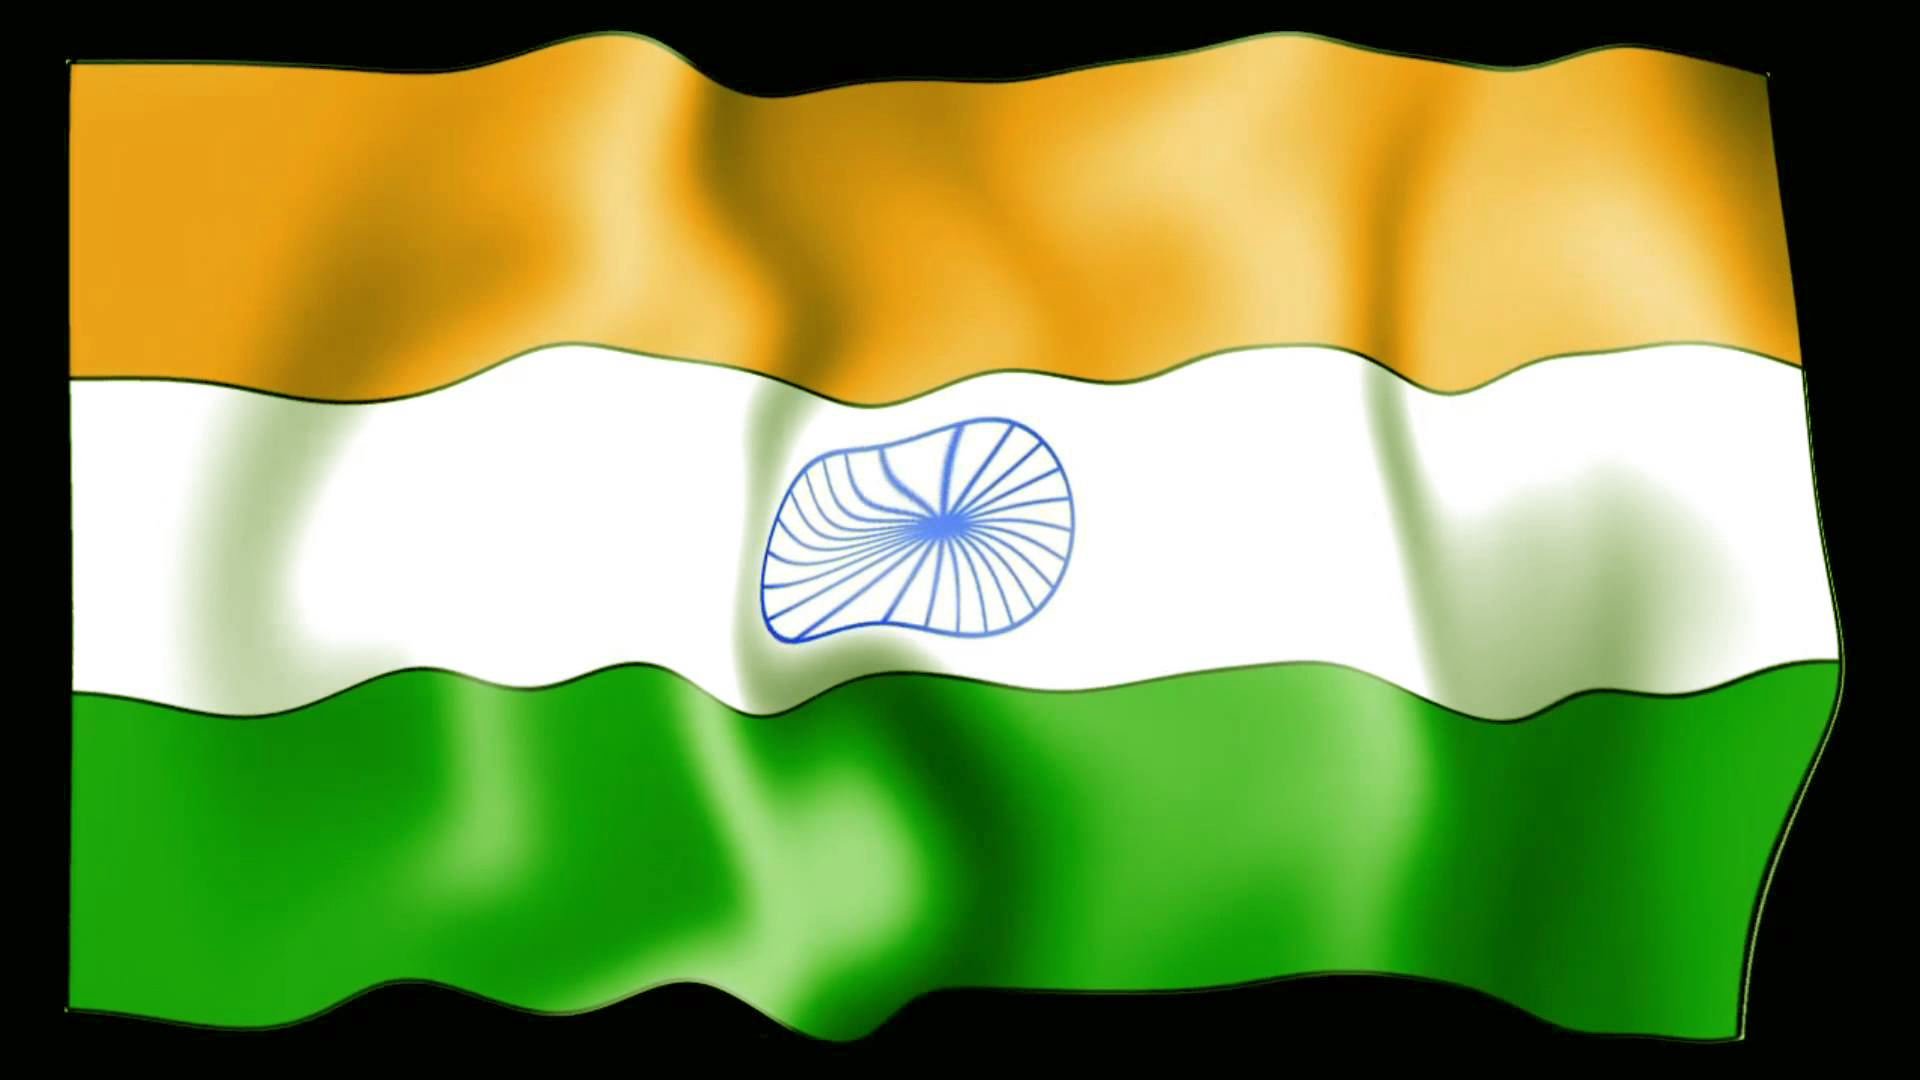 For Indian Flag Hd Animation: {New} Indian Flag HD Wallpapers Images 2015